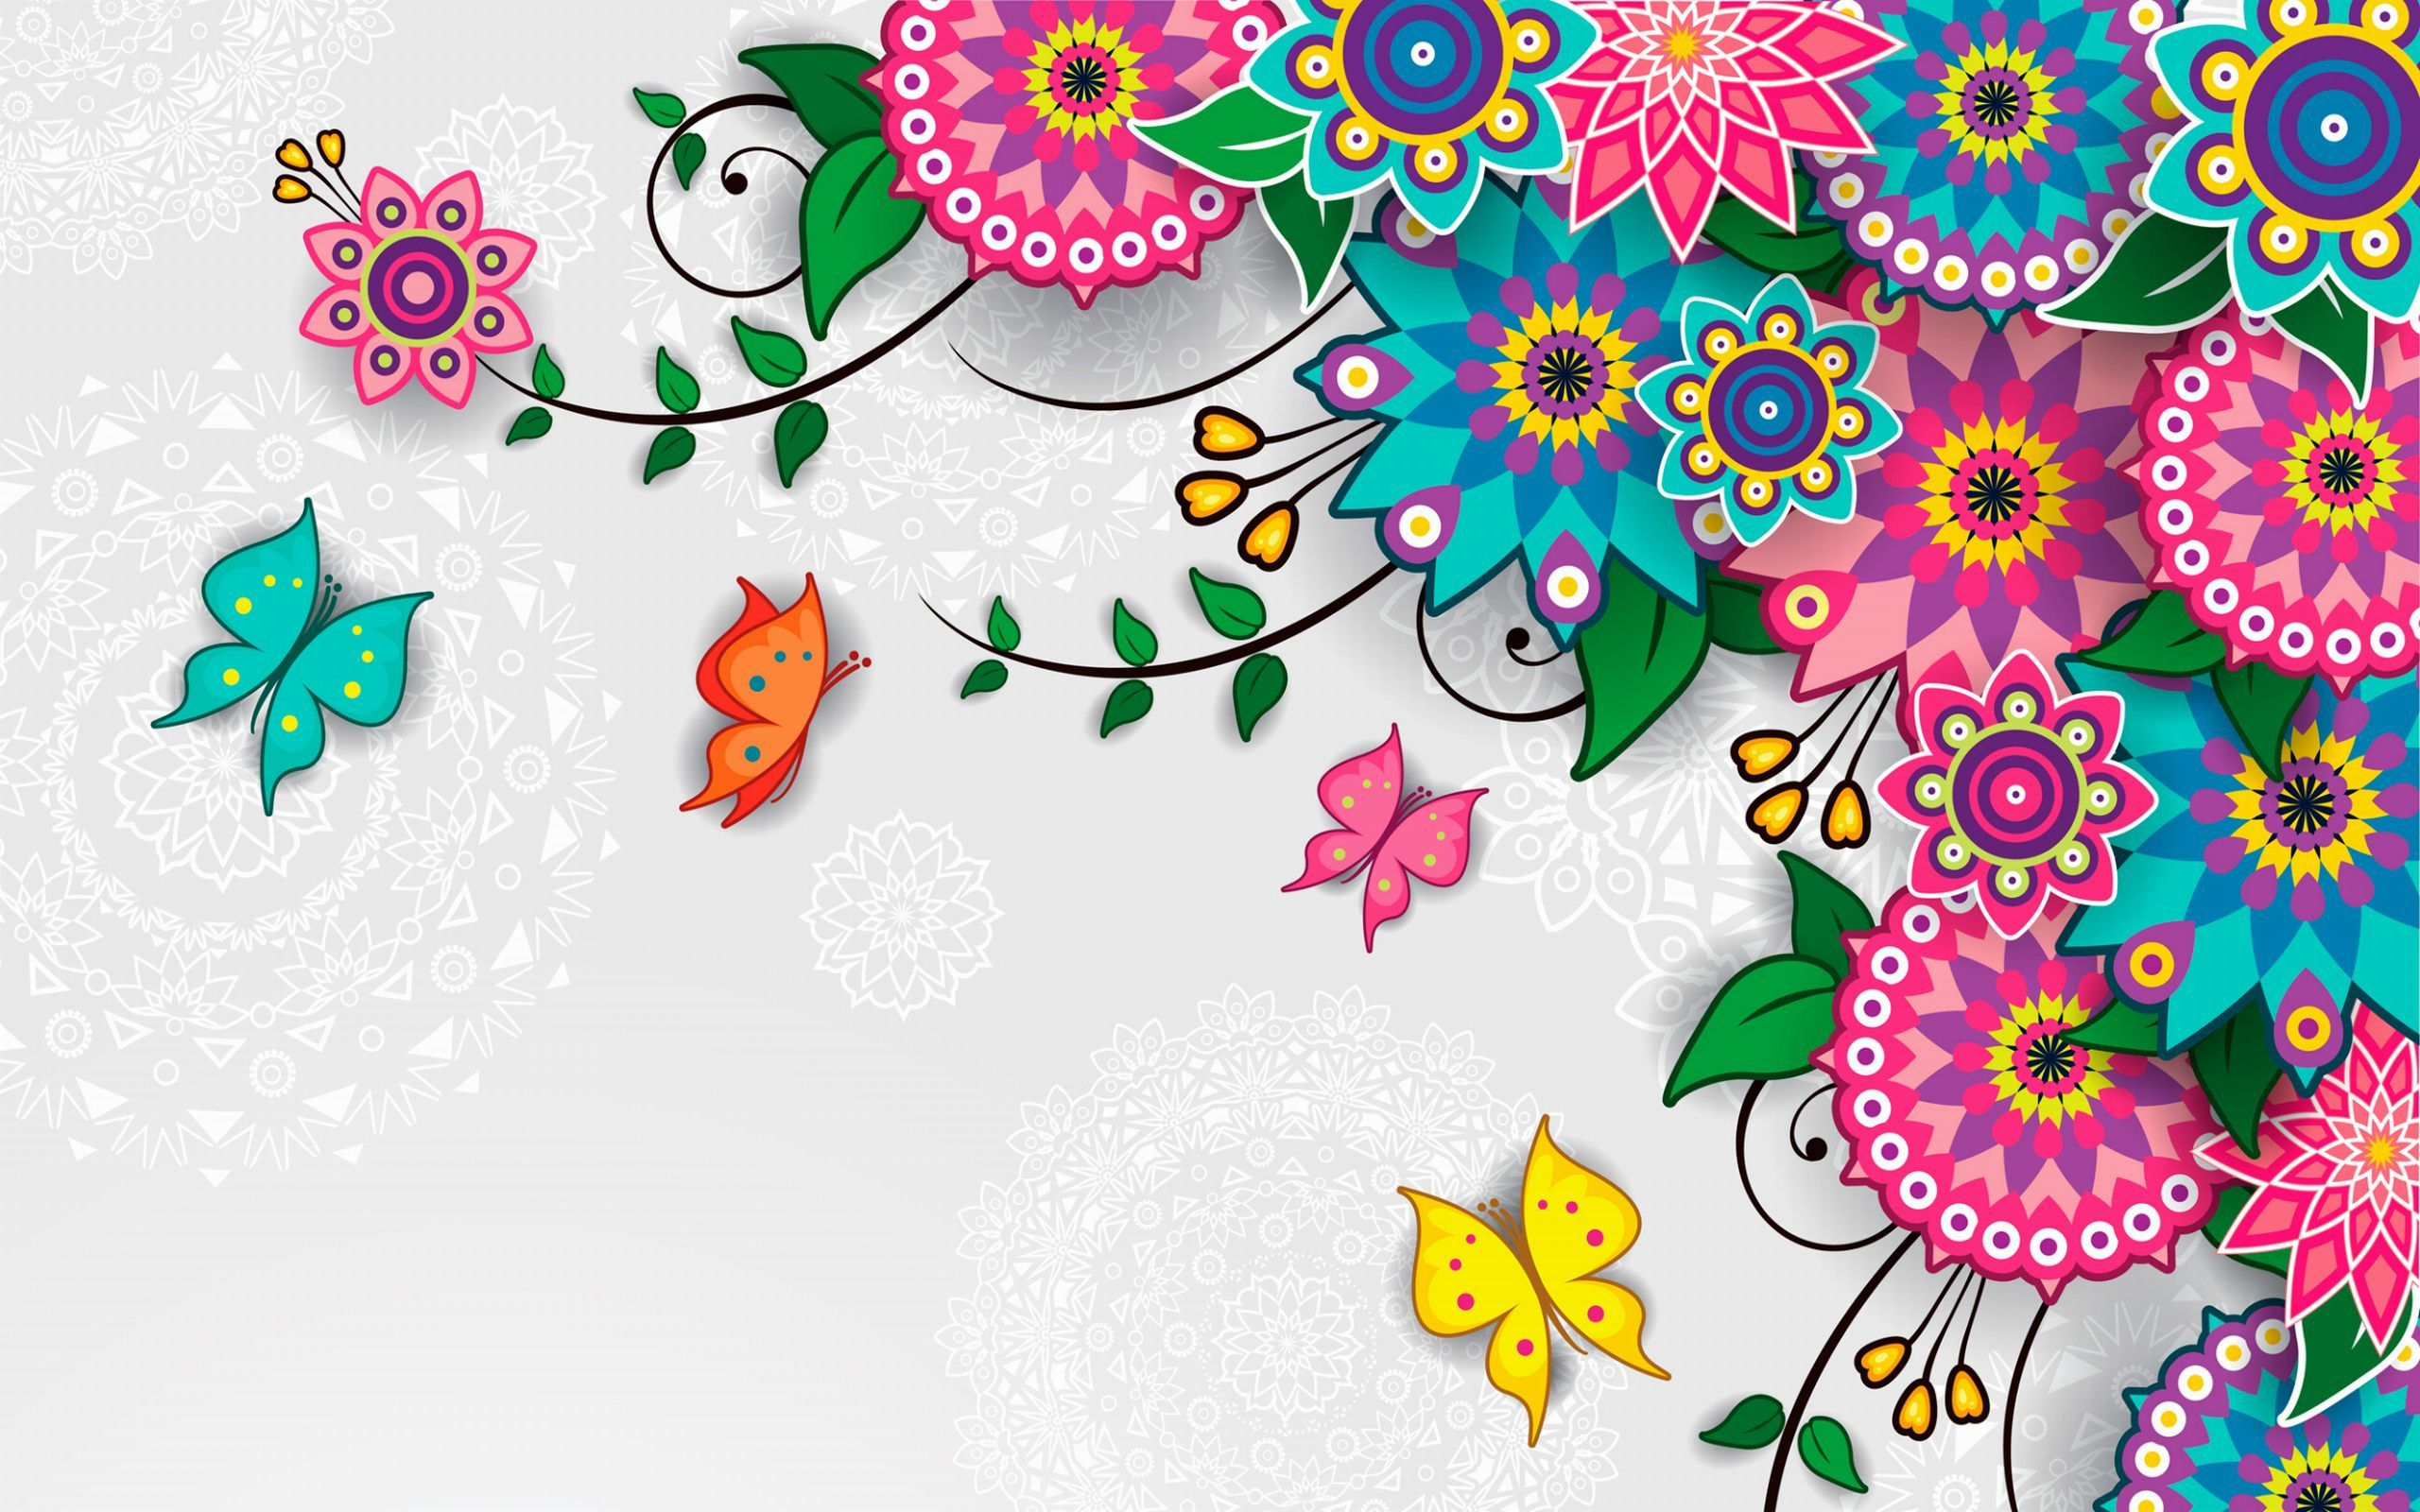 Flowers pattern vector art background wallpaper for for Wallpaper prints patterns